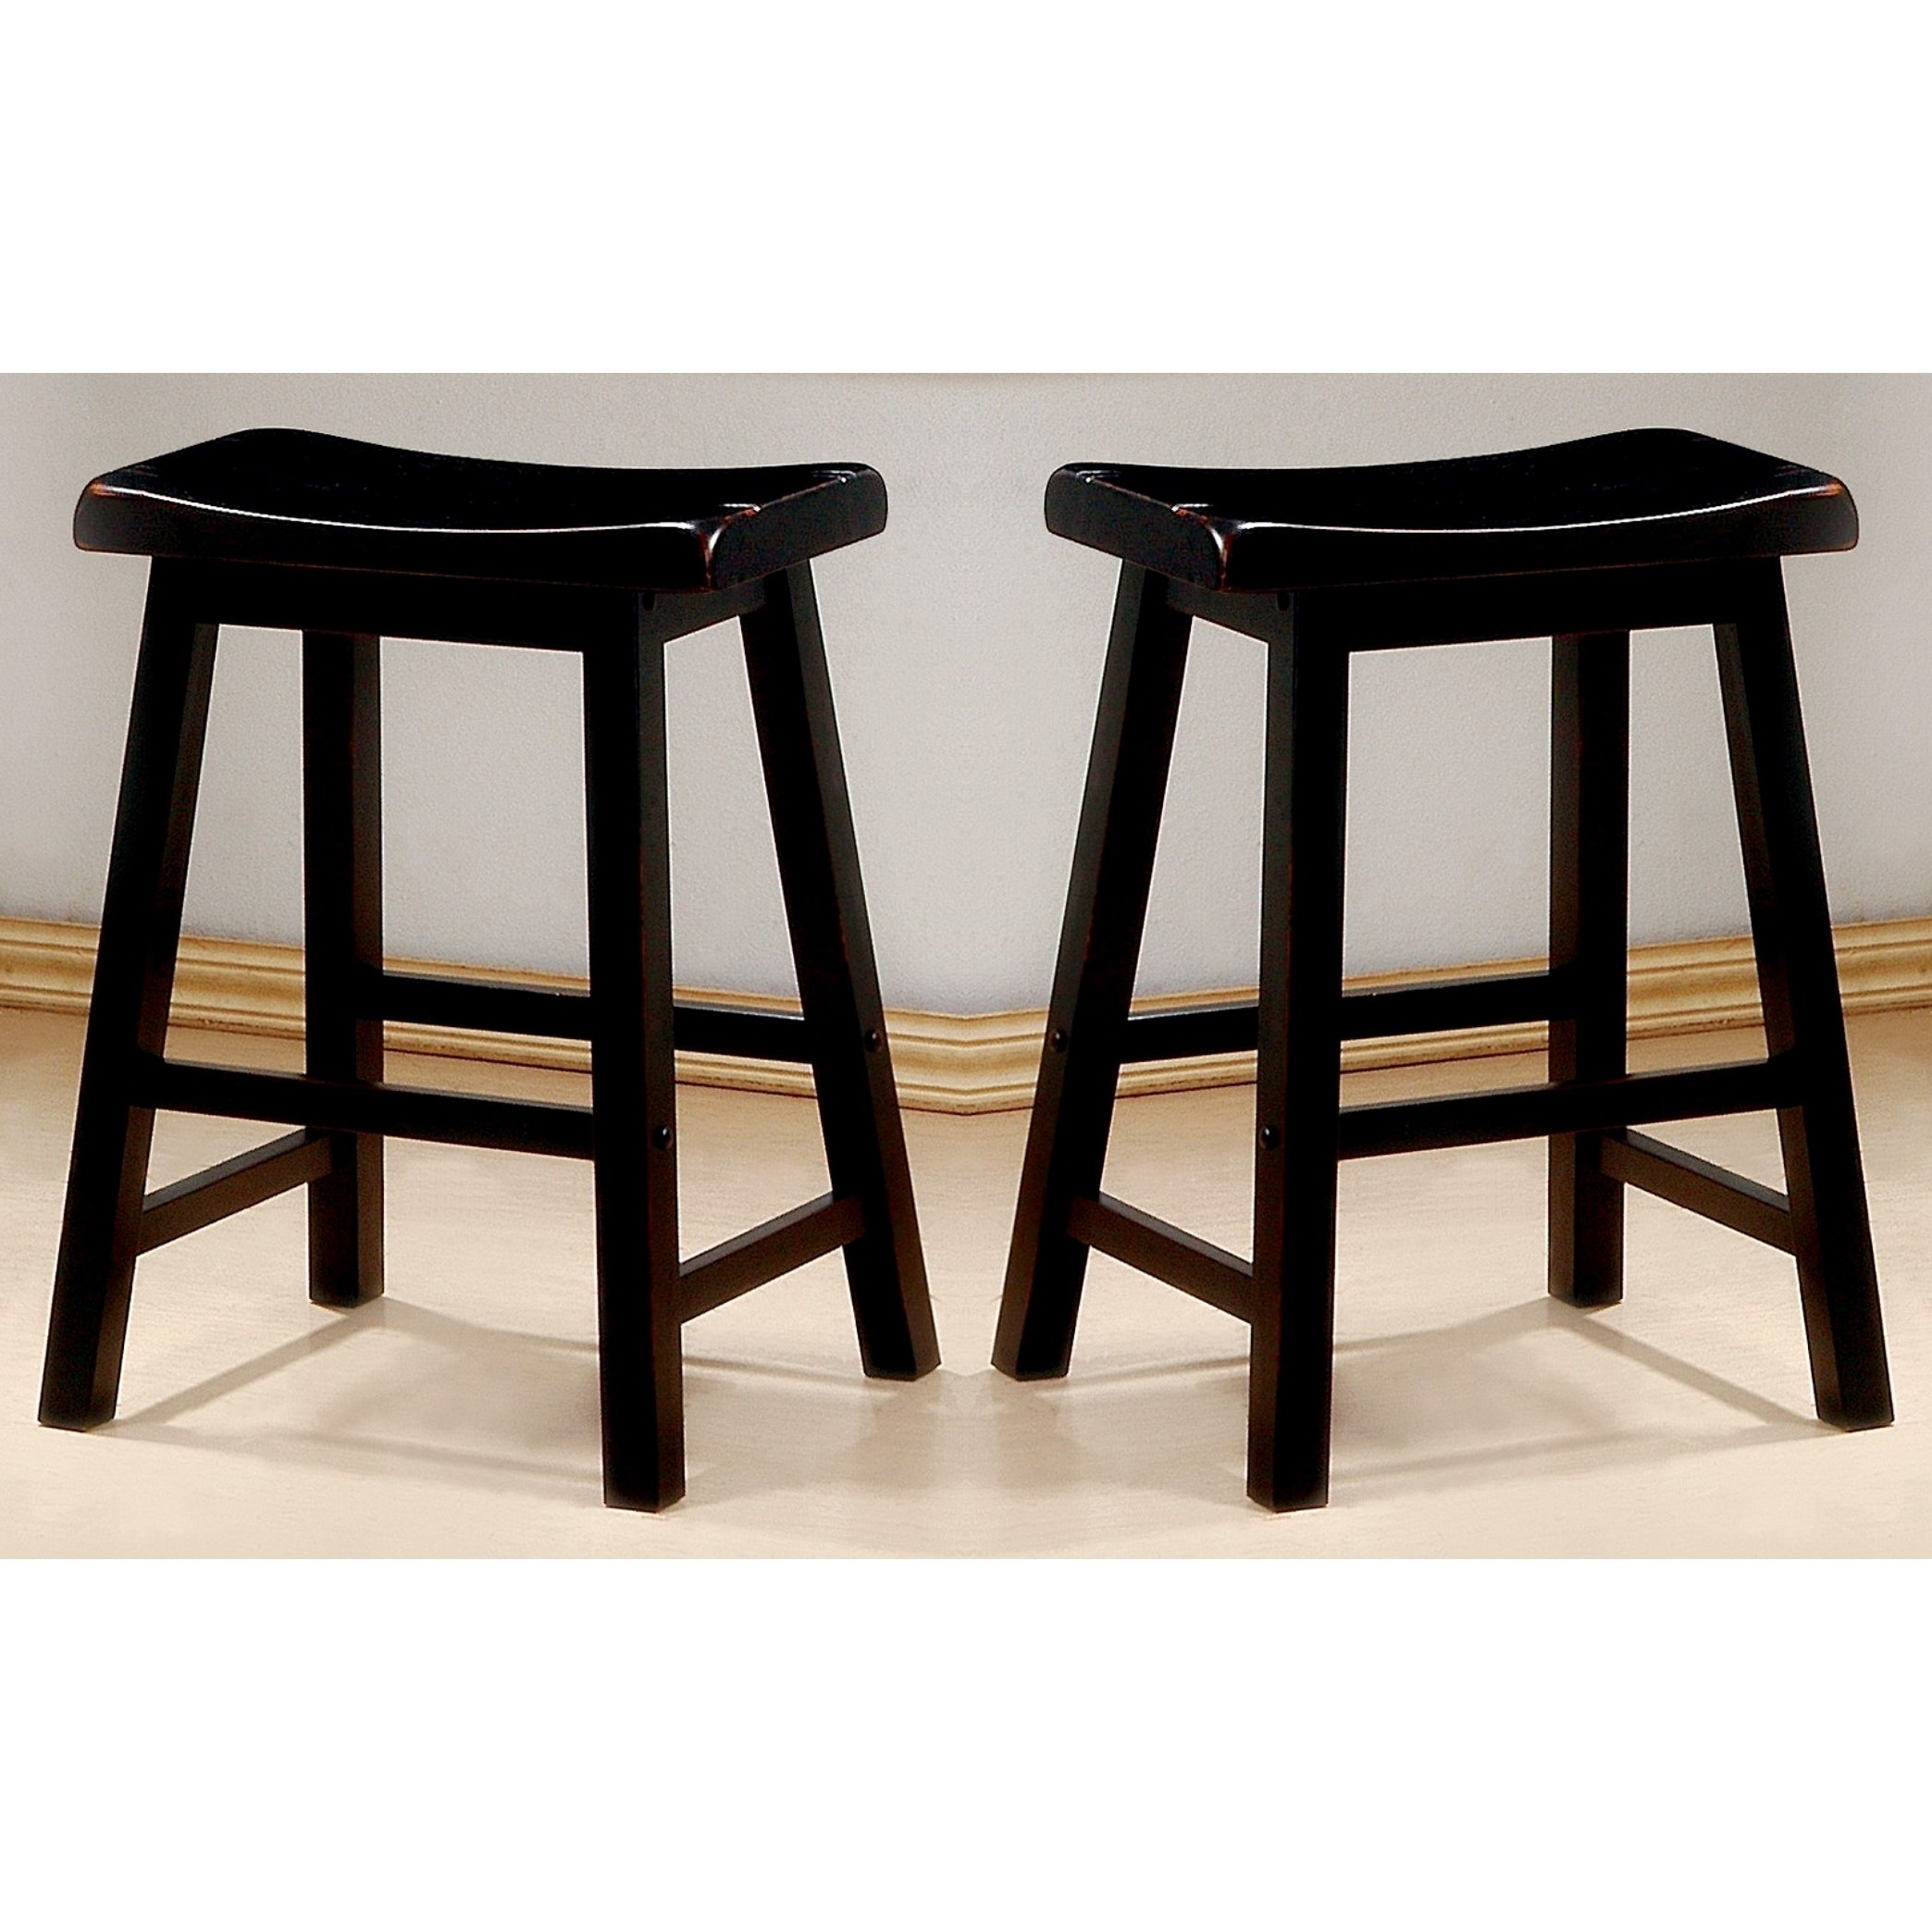 Groovy Casual Distressed Black Cherry Saddle Design Counter Height Stools Set Of 2 Pdpeps Interior Chair Design Pdpepsorg